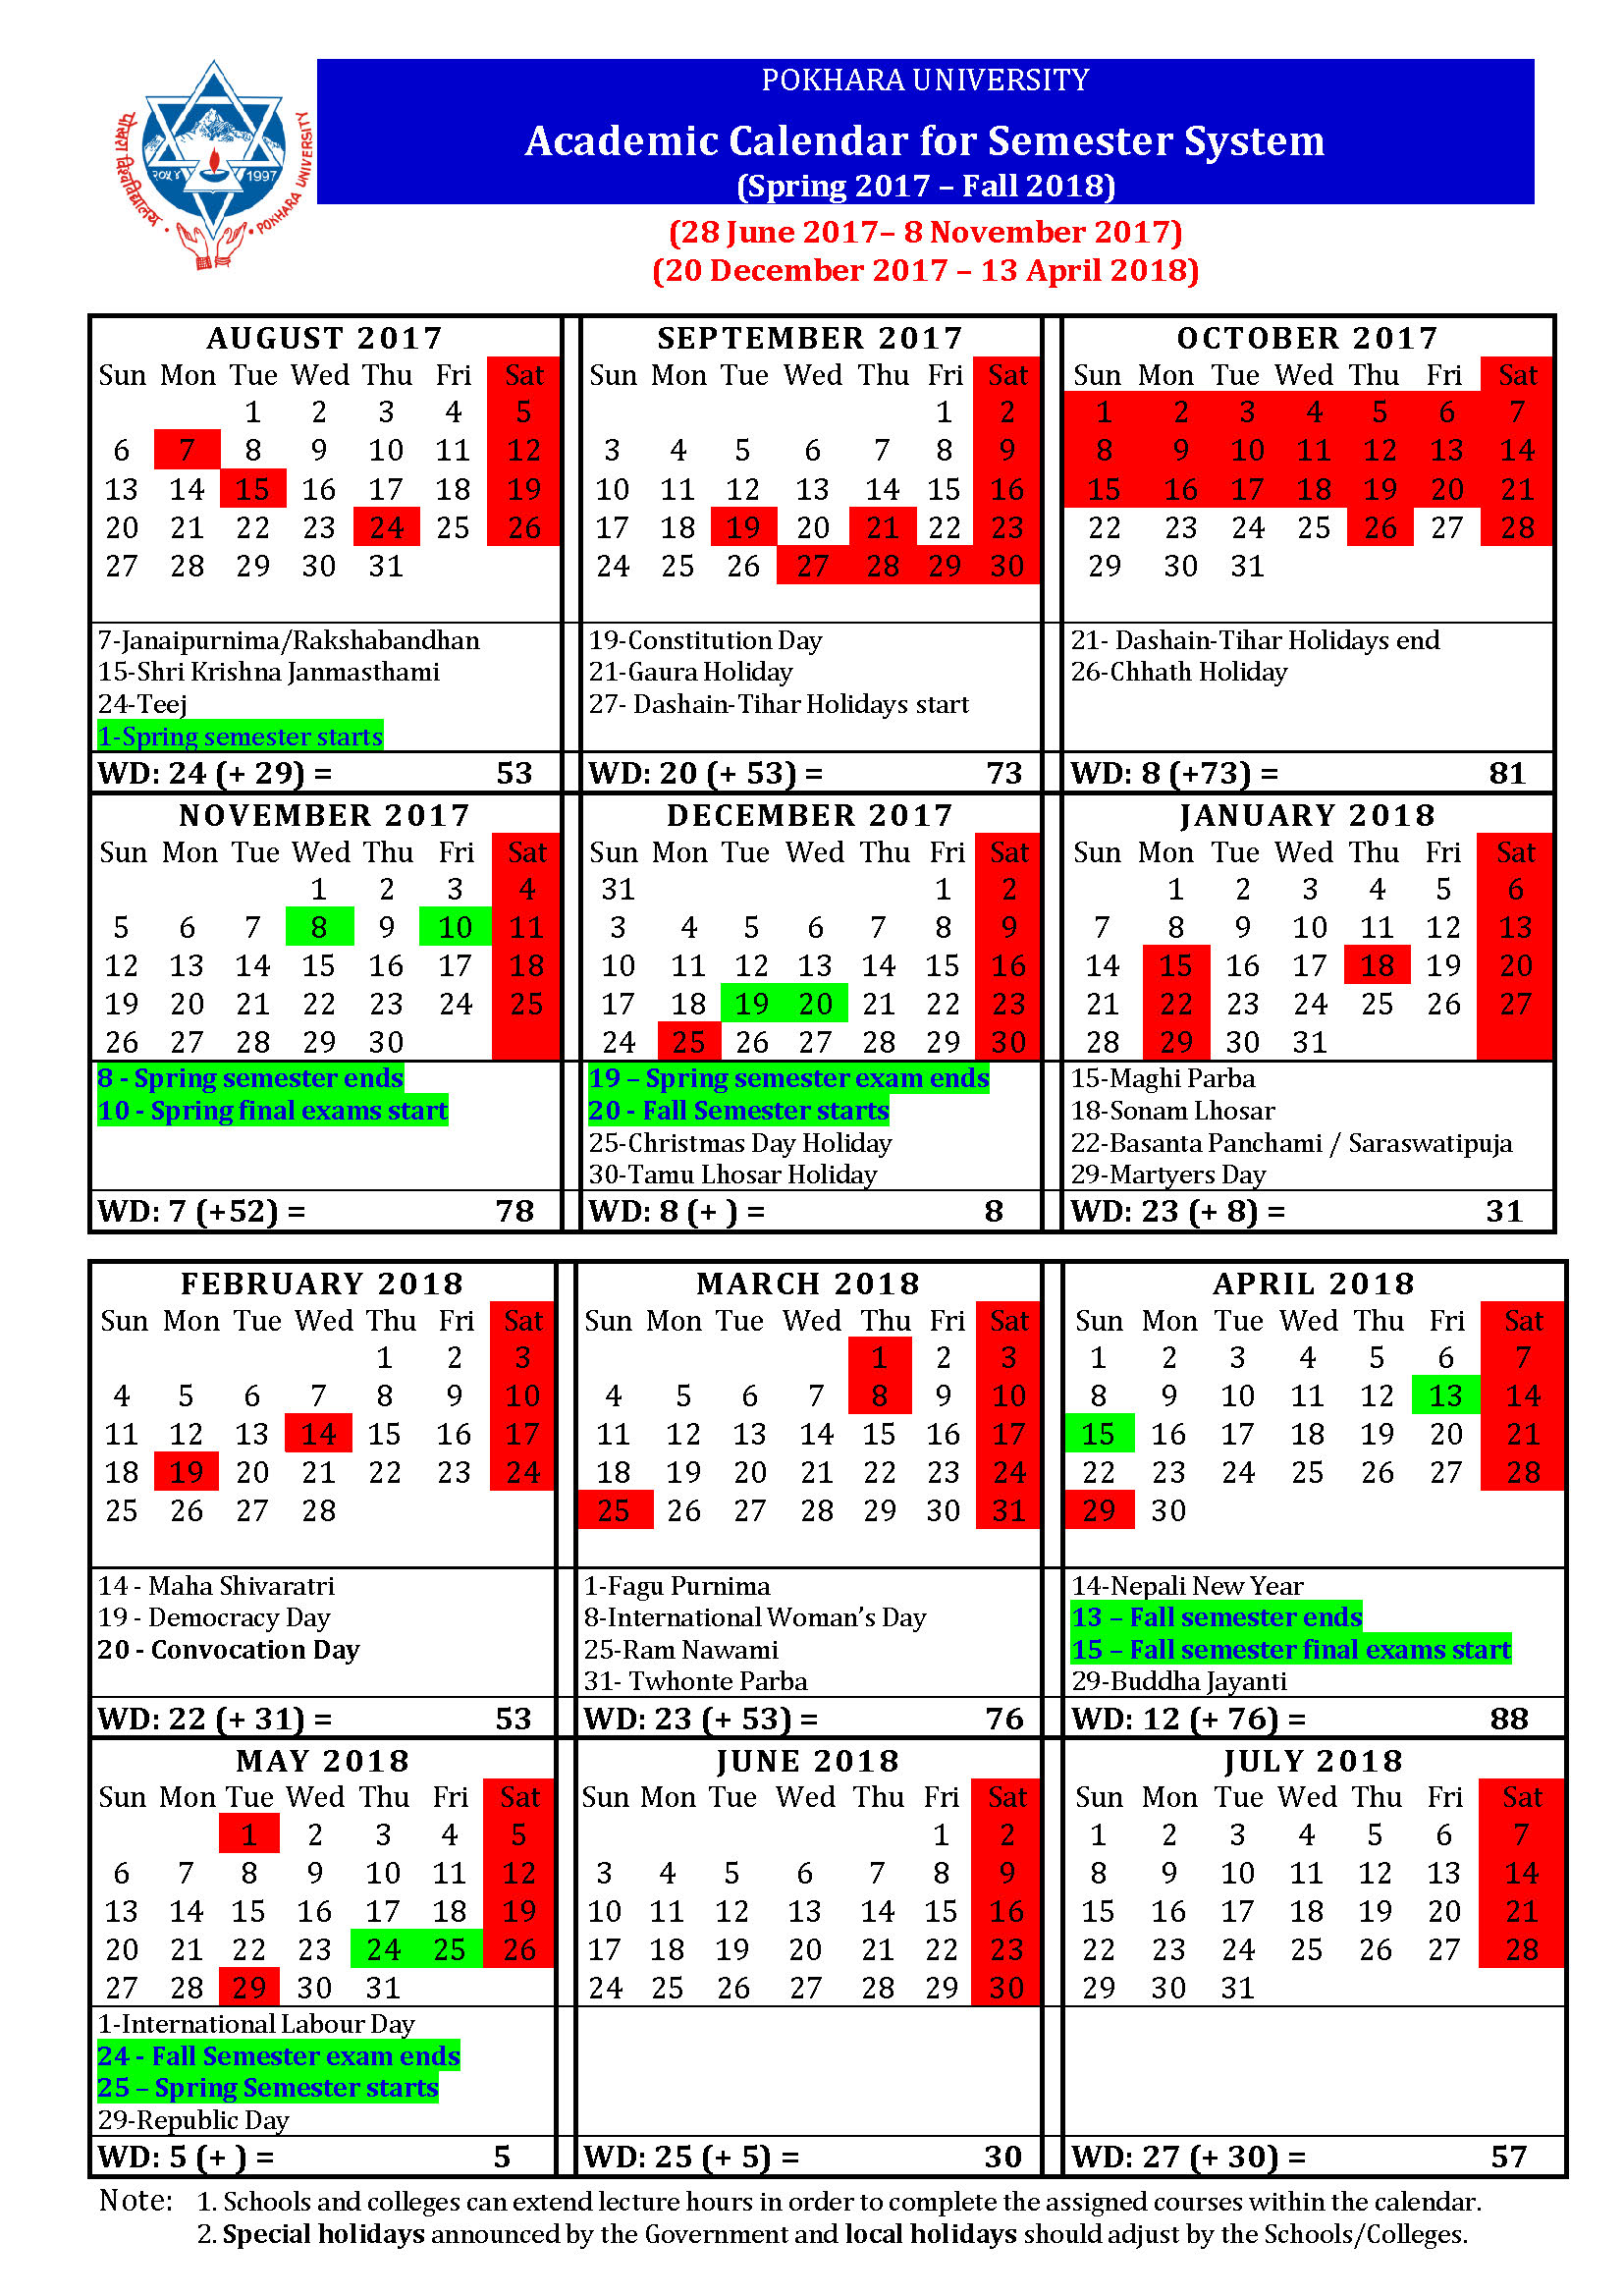 academic calendar for semester system spring 2018 to fall 2019